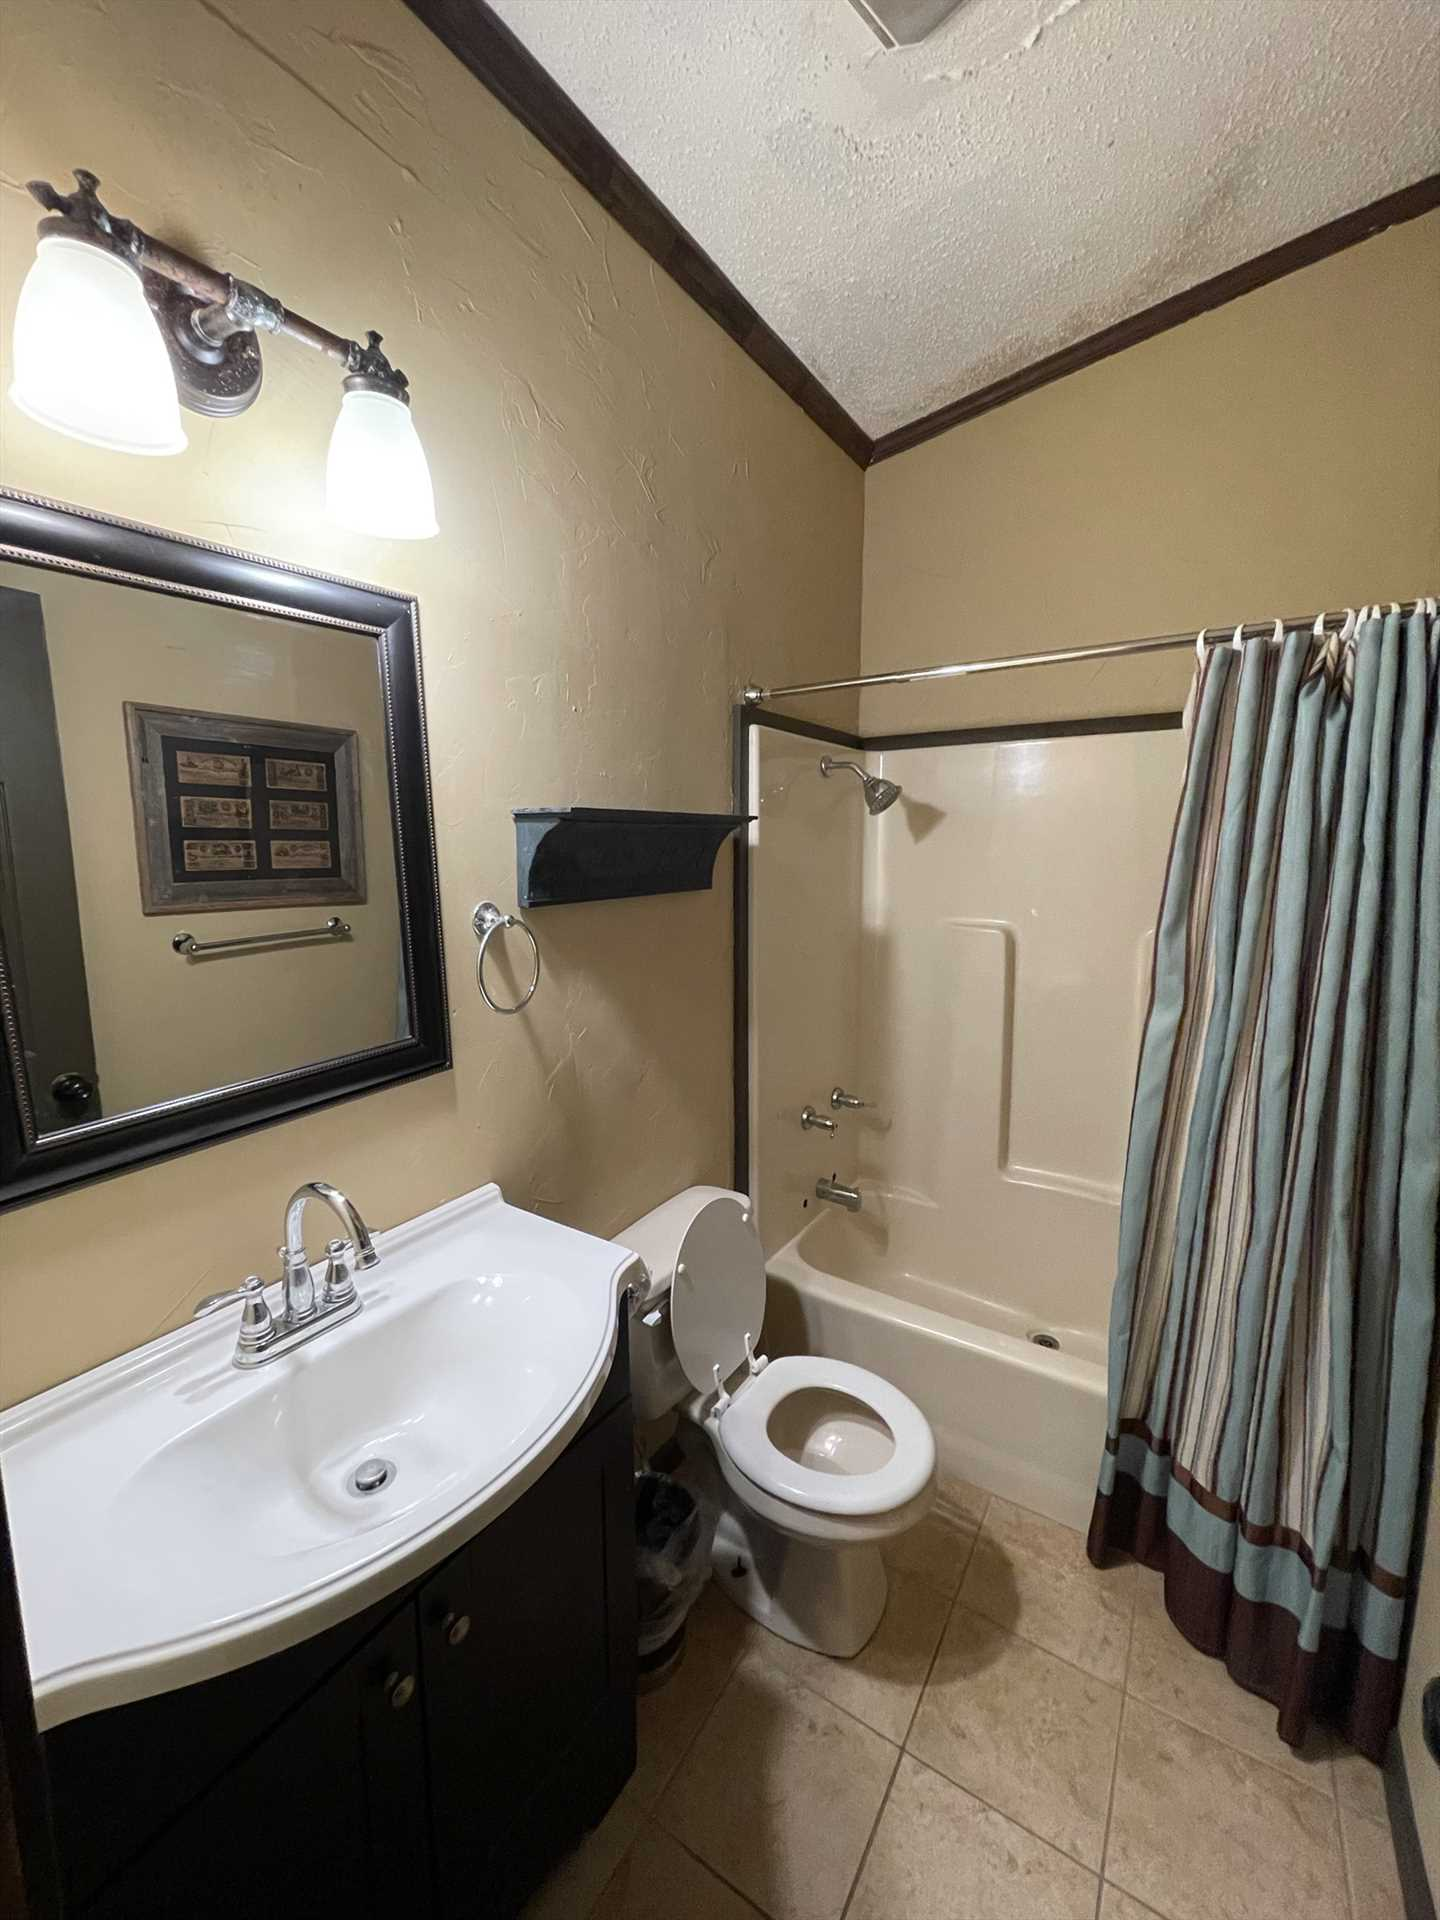 A second bathroom is not only sparkling clean, but also features a tub and shower combo.